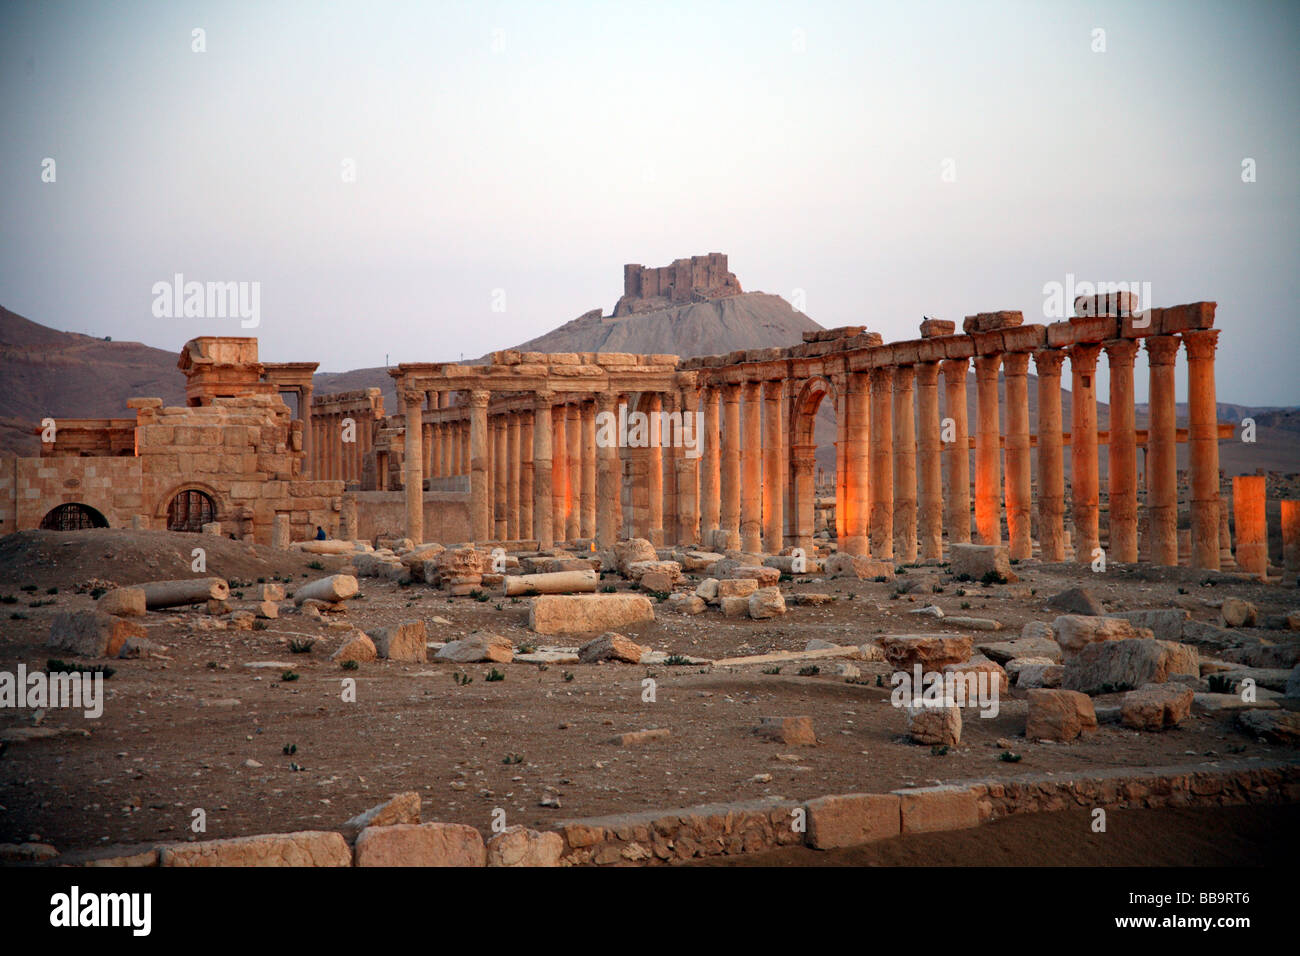 Monumental arch and colonnaded street Palmyra Syria with the Arab Castle Qalaat Ibn Maan in the background - Stock Image